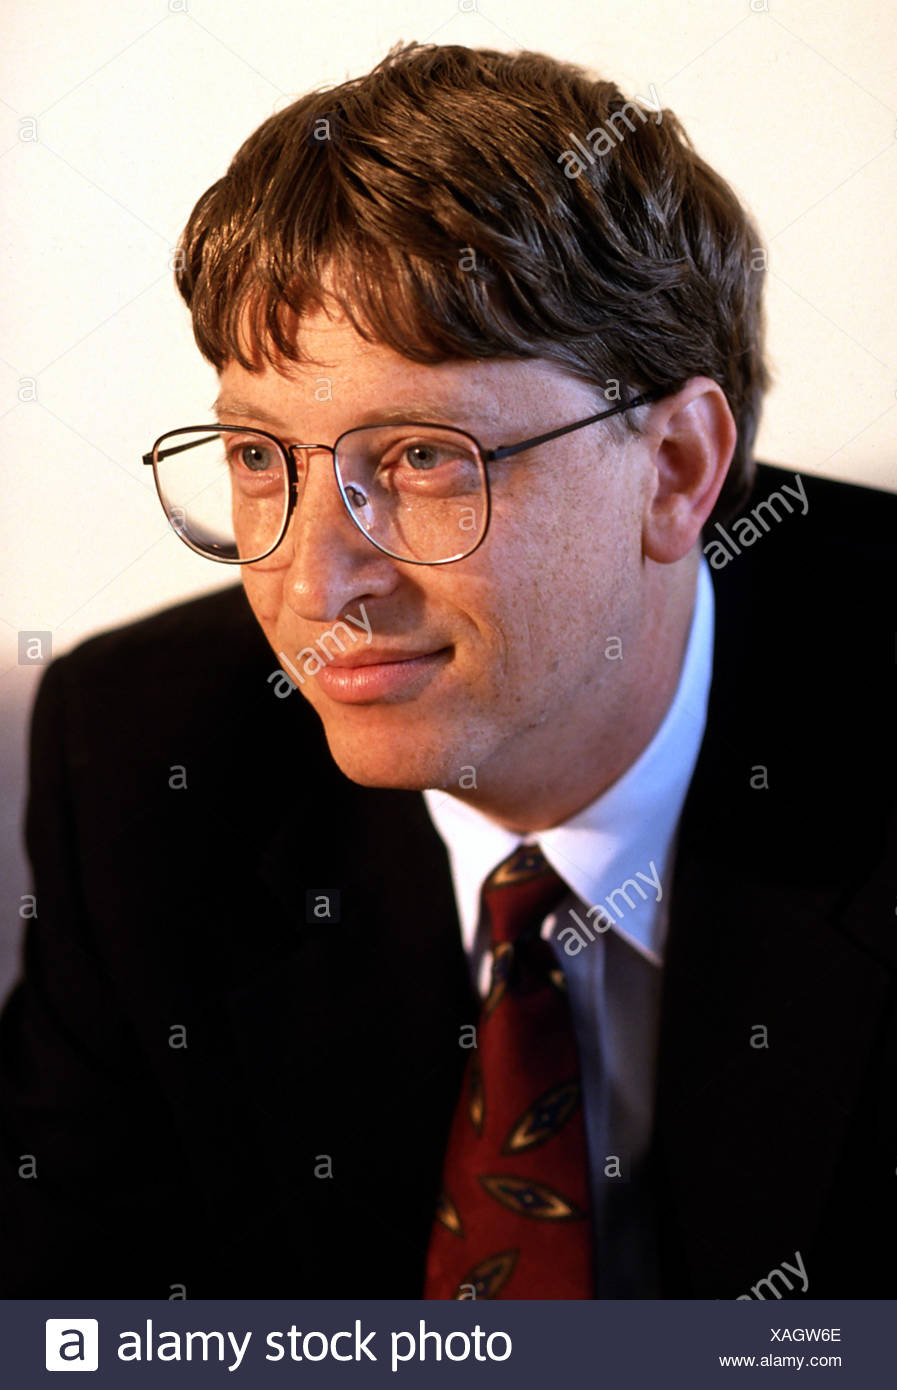 Gates, William, 'Bill', * 28.10.1955, American entrepreneur, (computing), co-founder, of Microsoft, Portrait, Munich, 1995, , Additional-Rights-Clearances-NA - Stock Image